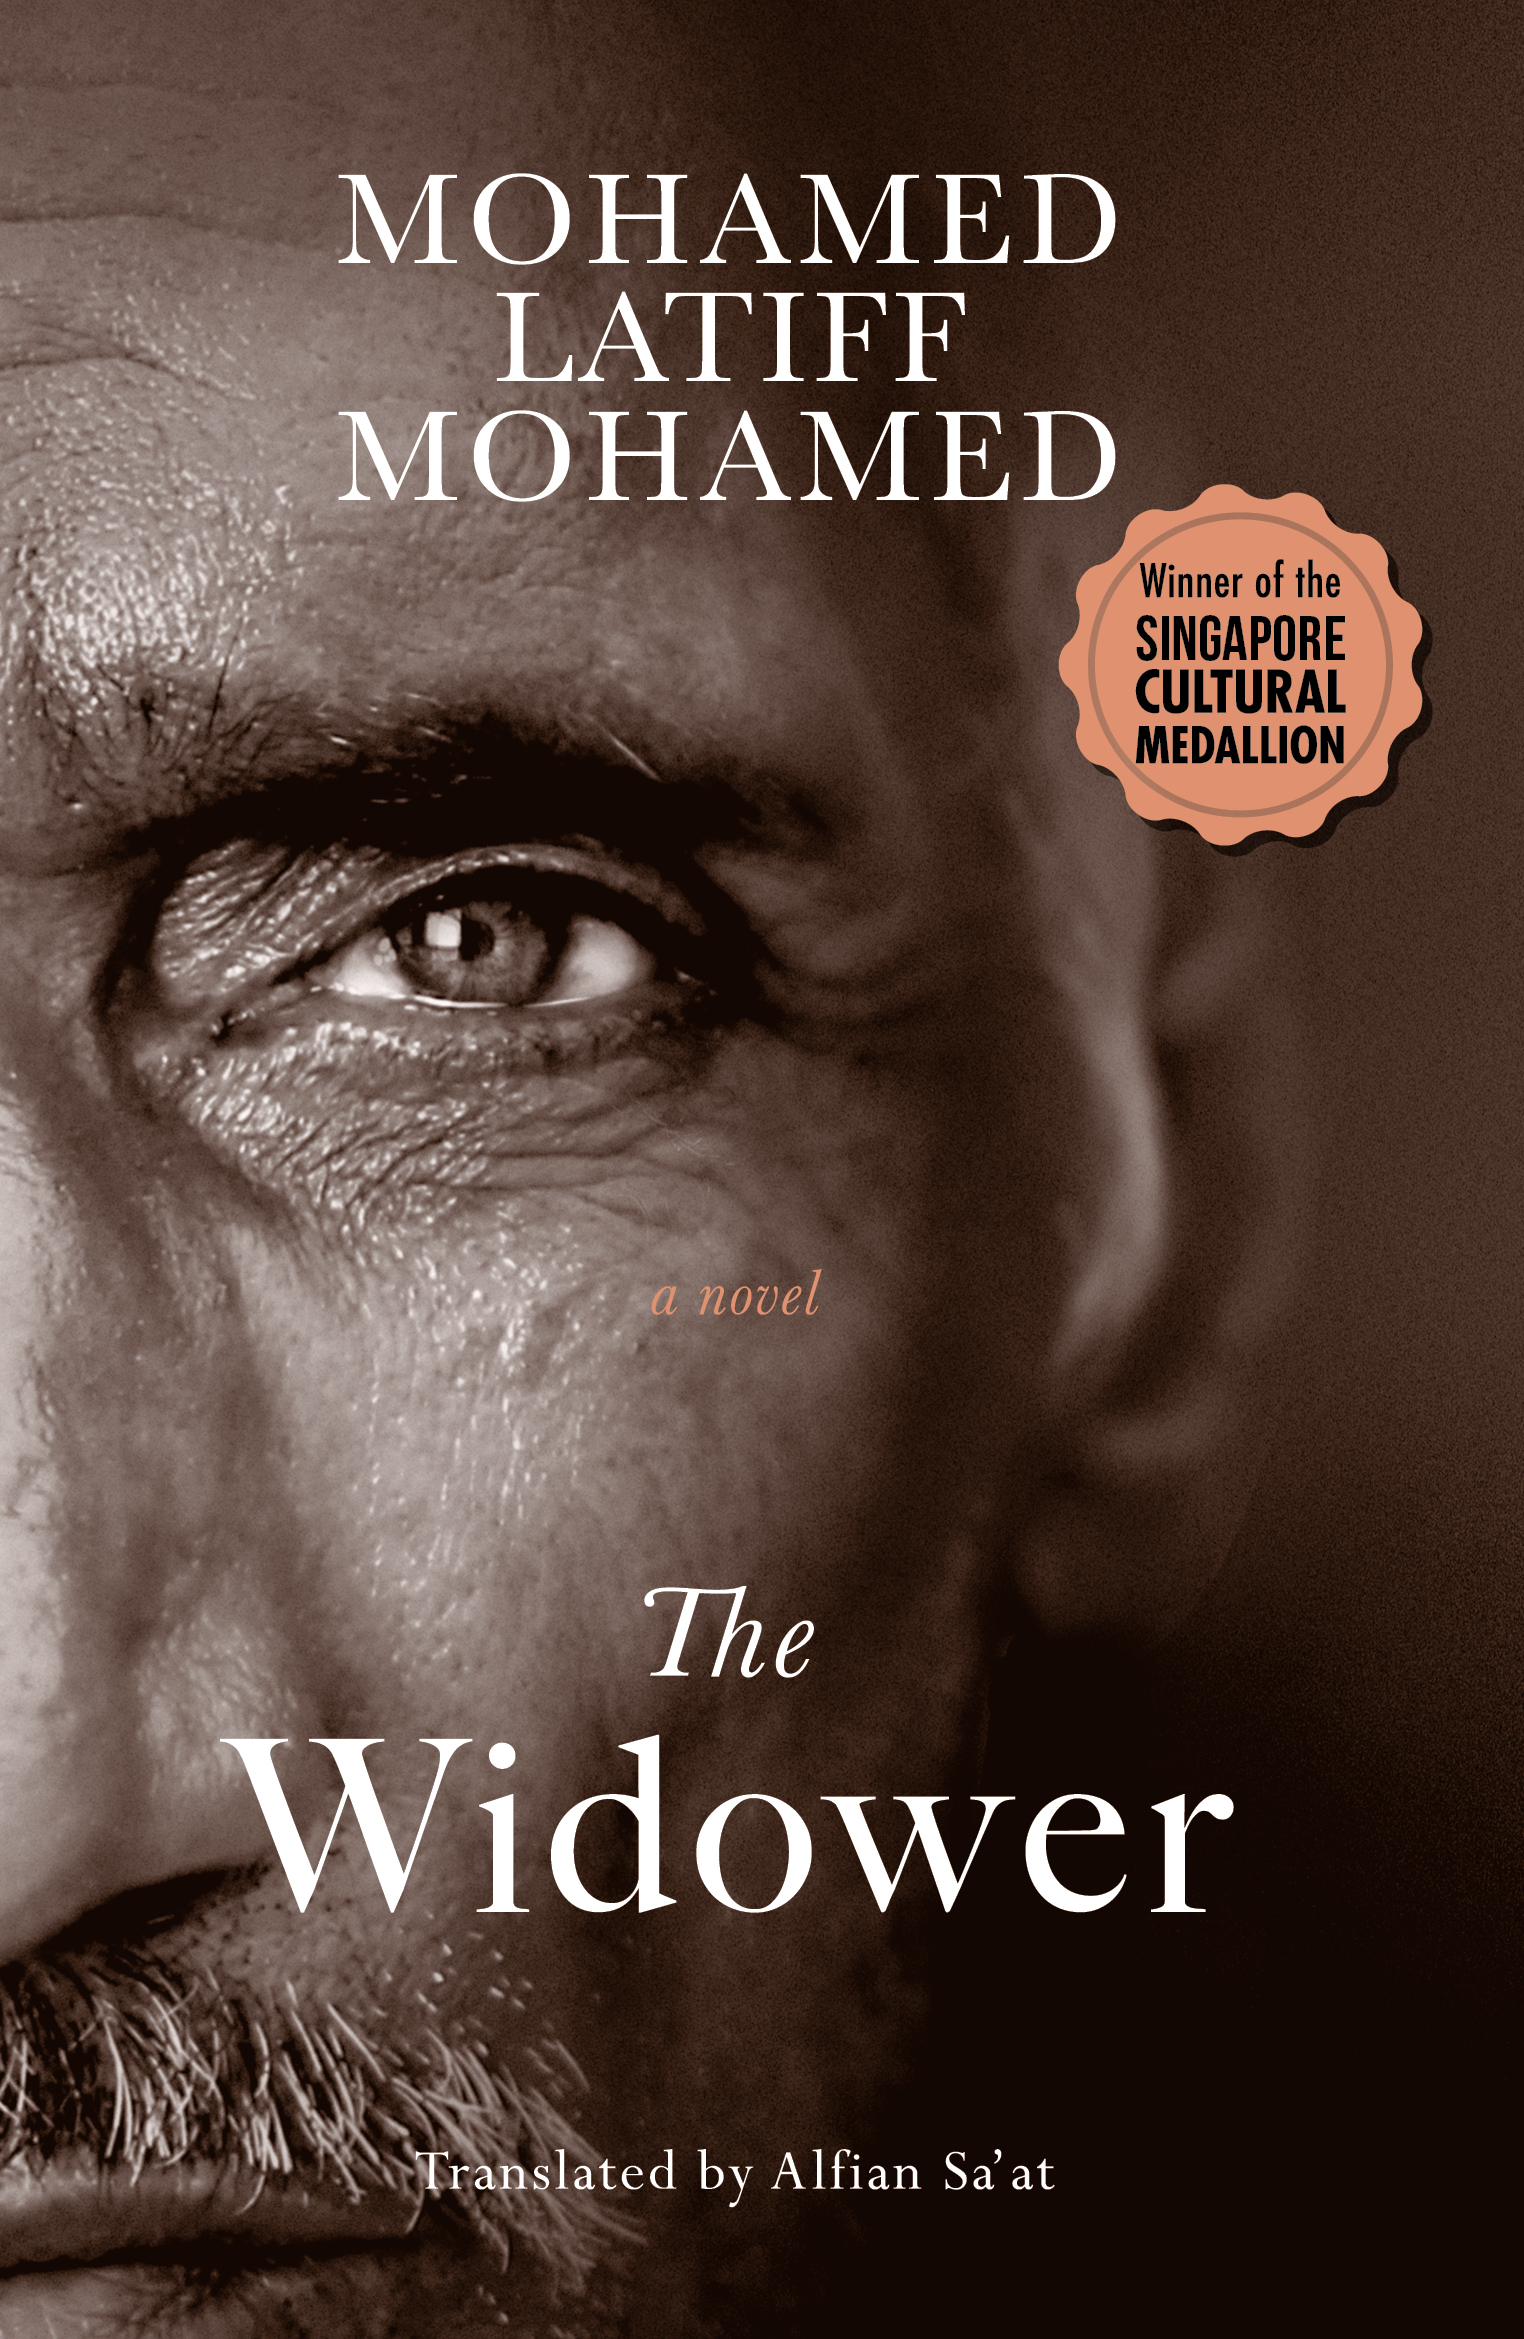 - THE WIDOWERMohamed Latiff Mohamedtranslated by Alfian Sa'atFormer political detainee and professor Pak Karman loses his wife in a car accident. The intensity of his mourning causes him to become untethered from his sanity. As reality, memory and fantasy become more and more blurred, he must come to terms with his past actions before his grief overwhelms him completely. Mohamed Latiff Mohamed's novel, hailed as a landmark in modernist Malay fiction, is an unsettling tale of psychic disintegration and obsessive love.£10General fiction978-1-91-209863-7January 2018GET THE BOOK HERE